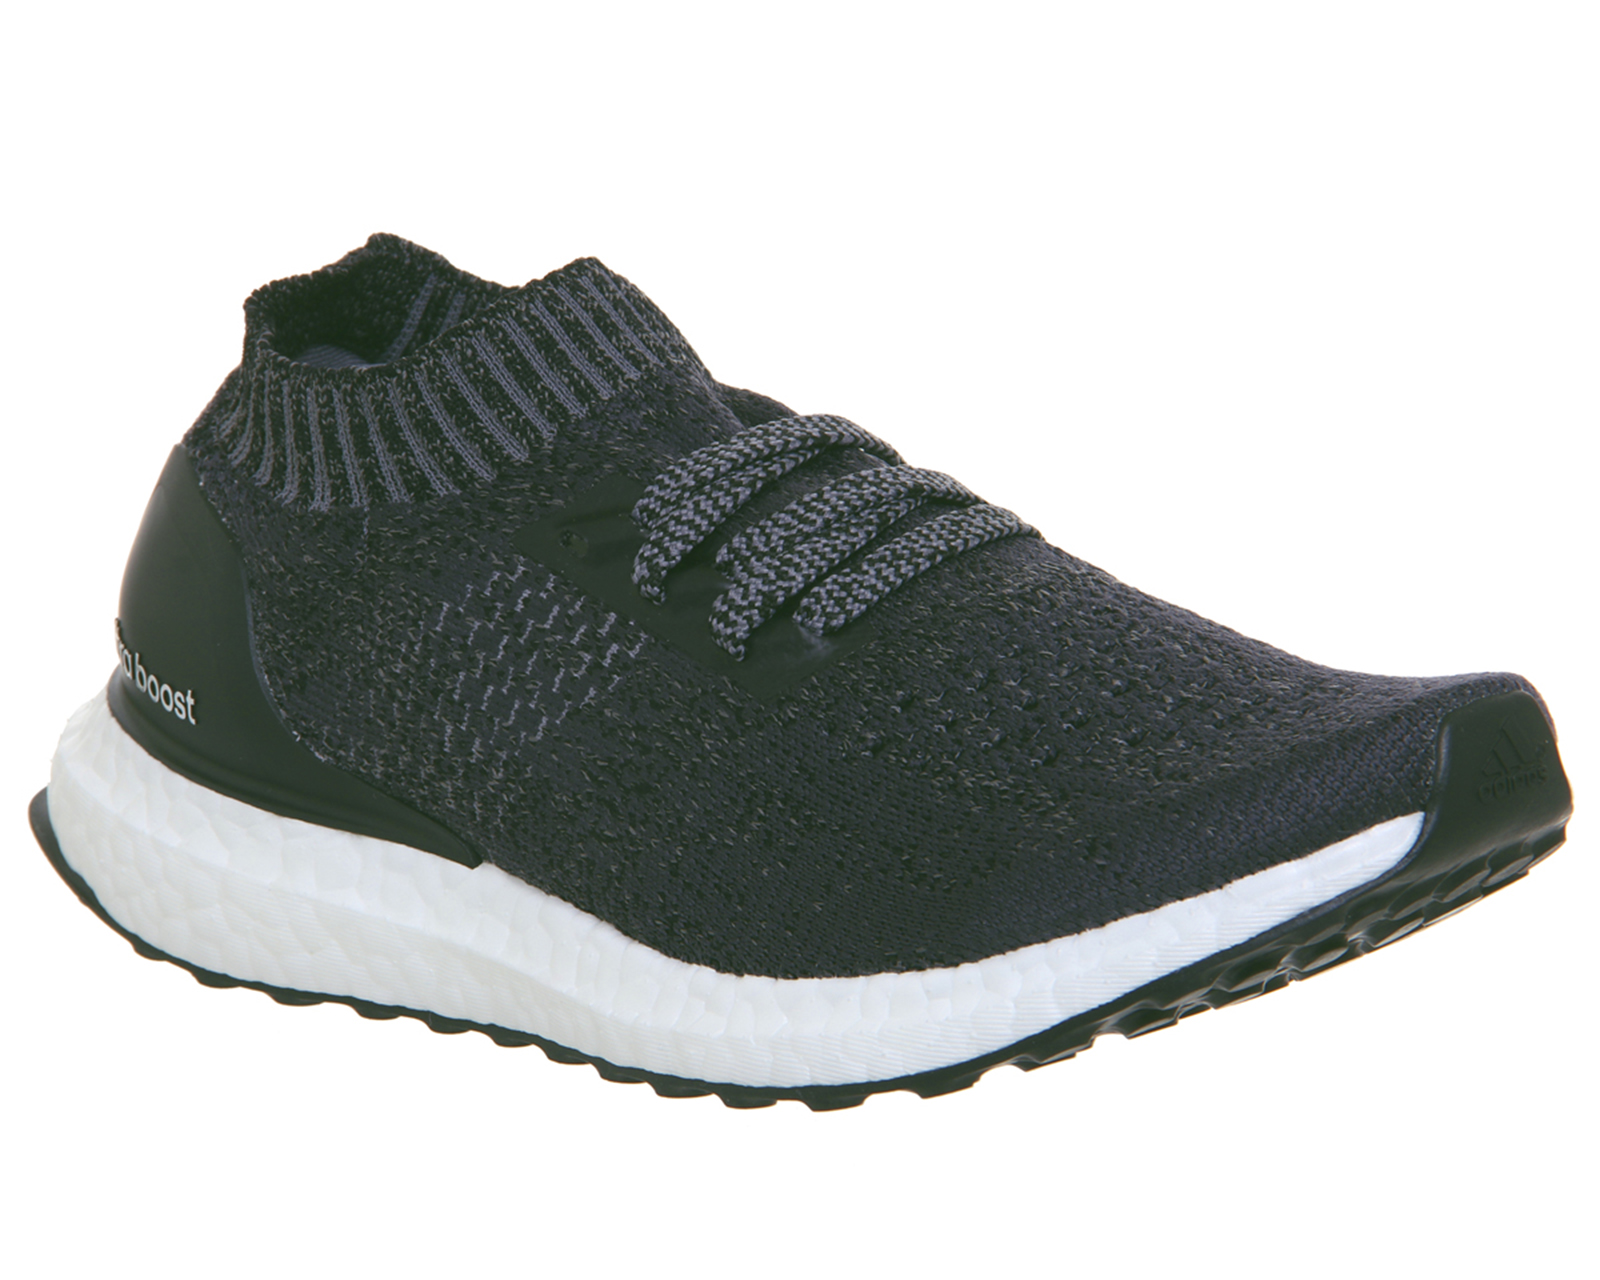 a3e2142b0 Sentinel Womens Adidas Ultraboost Ultra Boost Uncaged Trainers Carbon F  Trainers Shoes